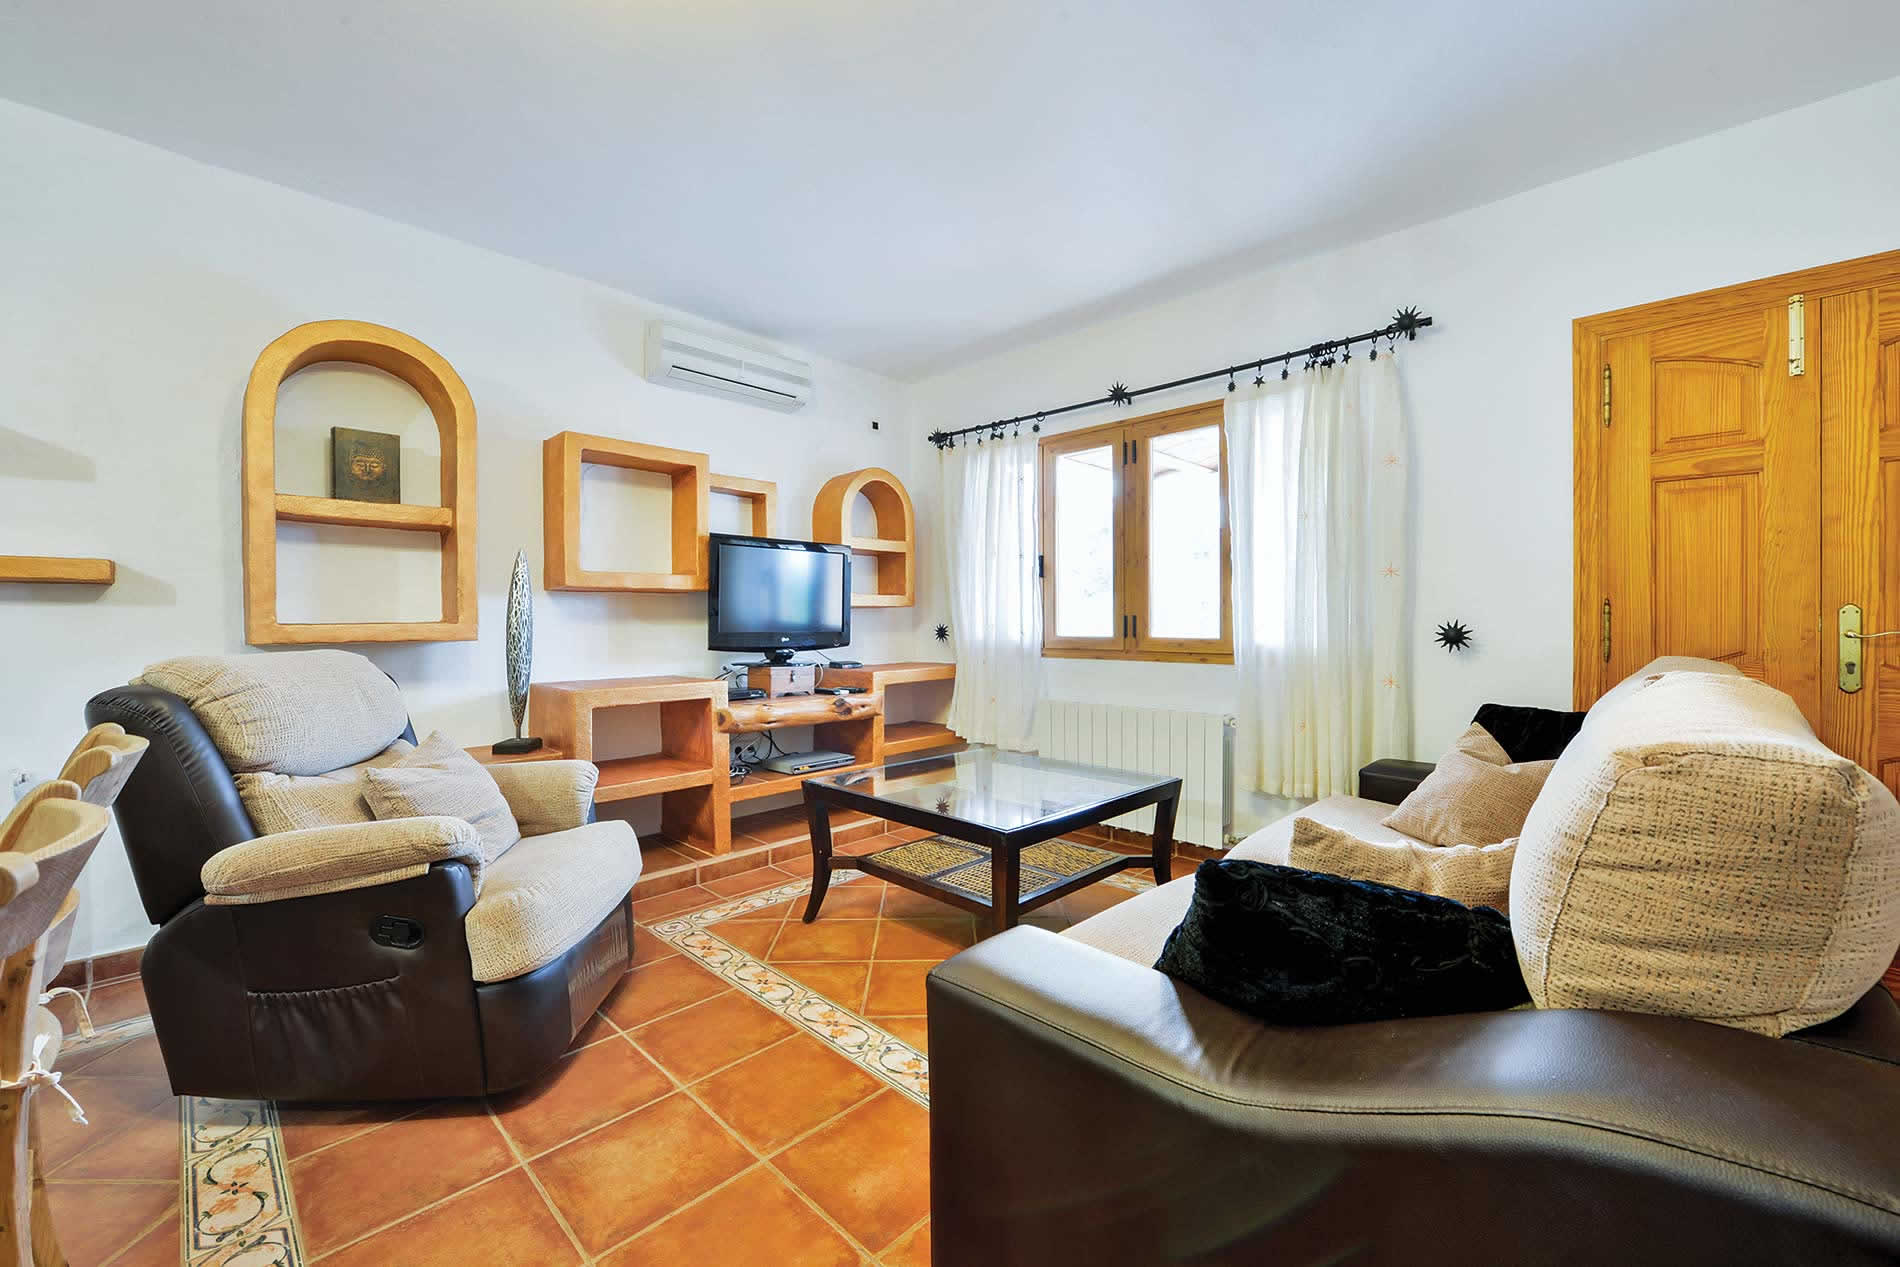 Villa Casa Laia Y Erika in Santa Eulalia - sleeps 6 people